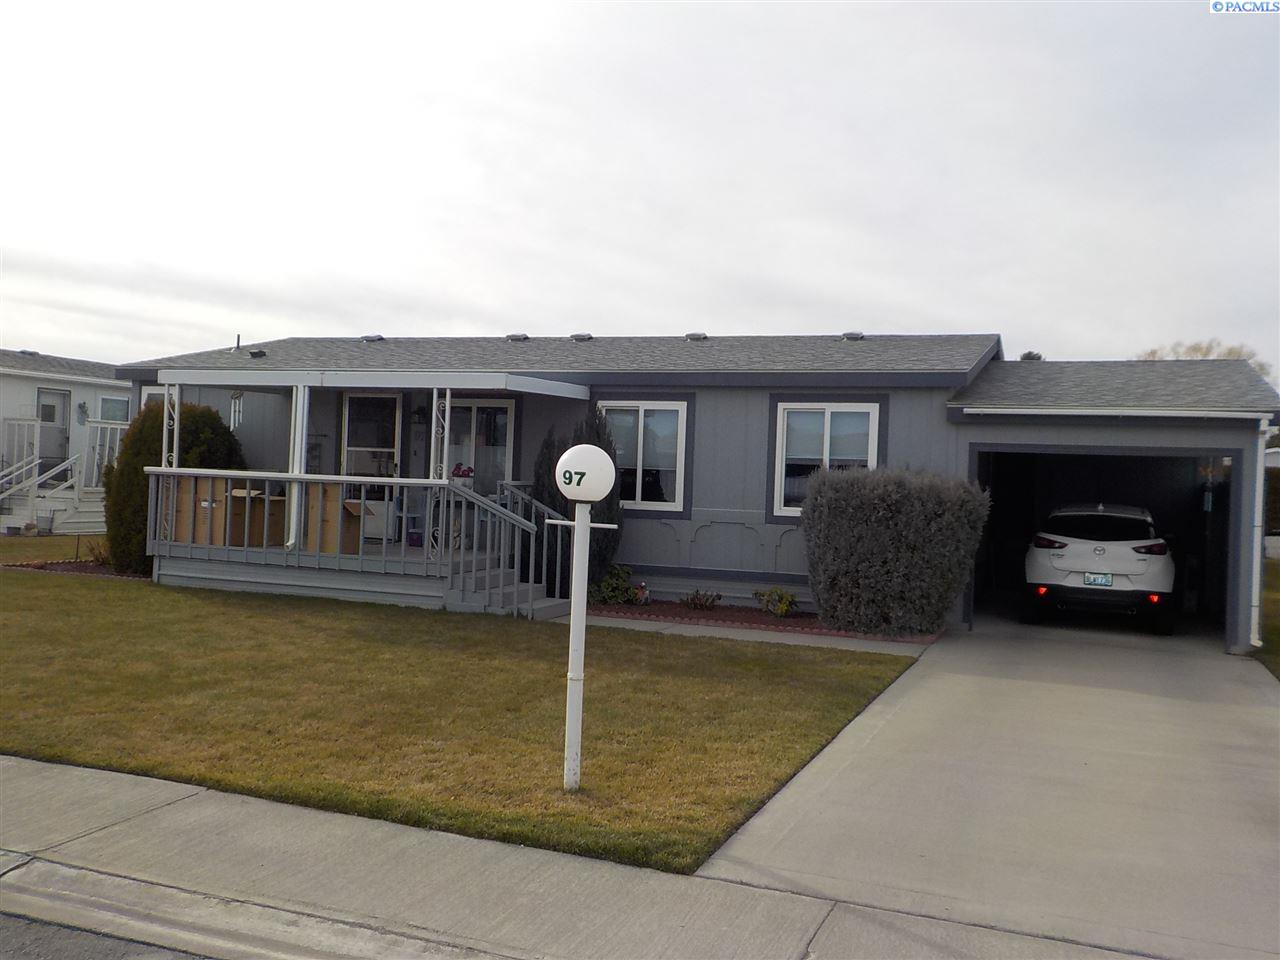 Manufactured Home for Sale at 312 S Columbia Center Blvd. #97 Kennewick, Washington 99336 United States